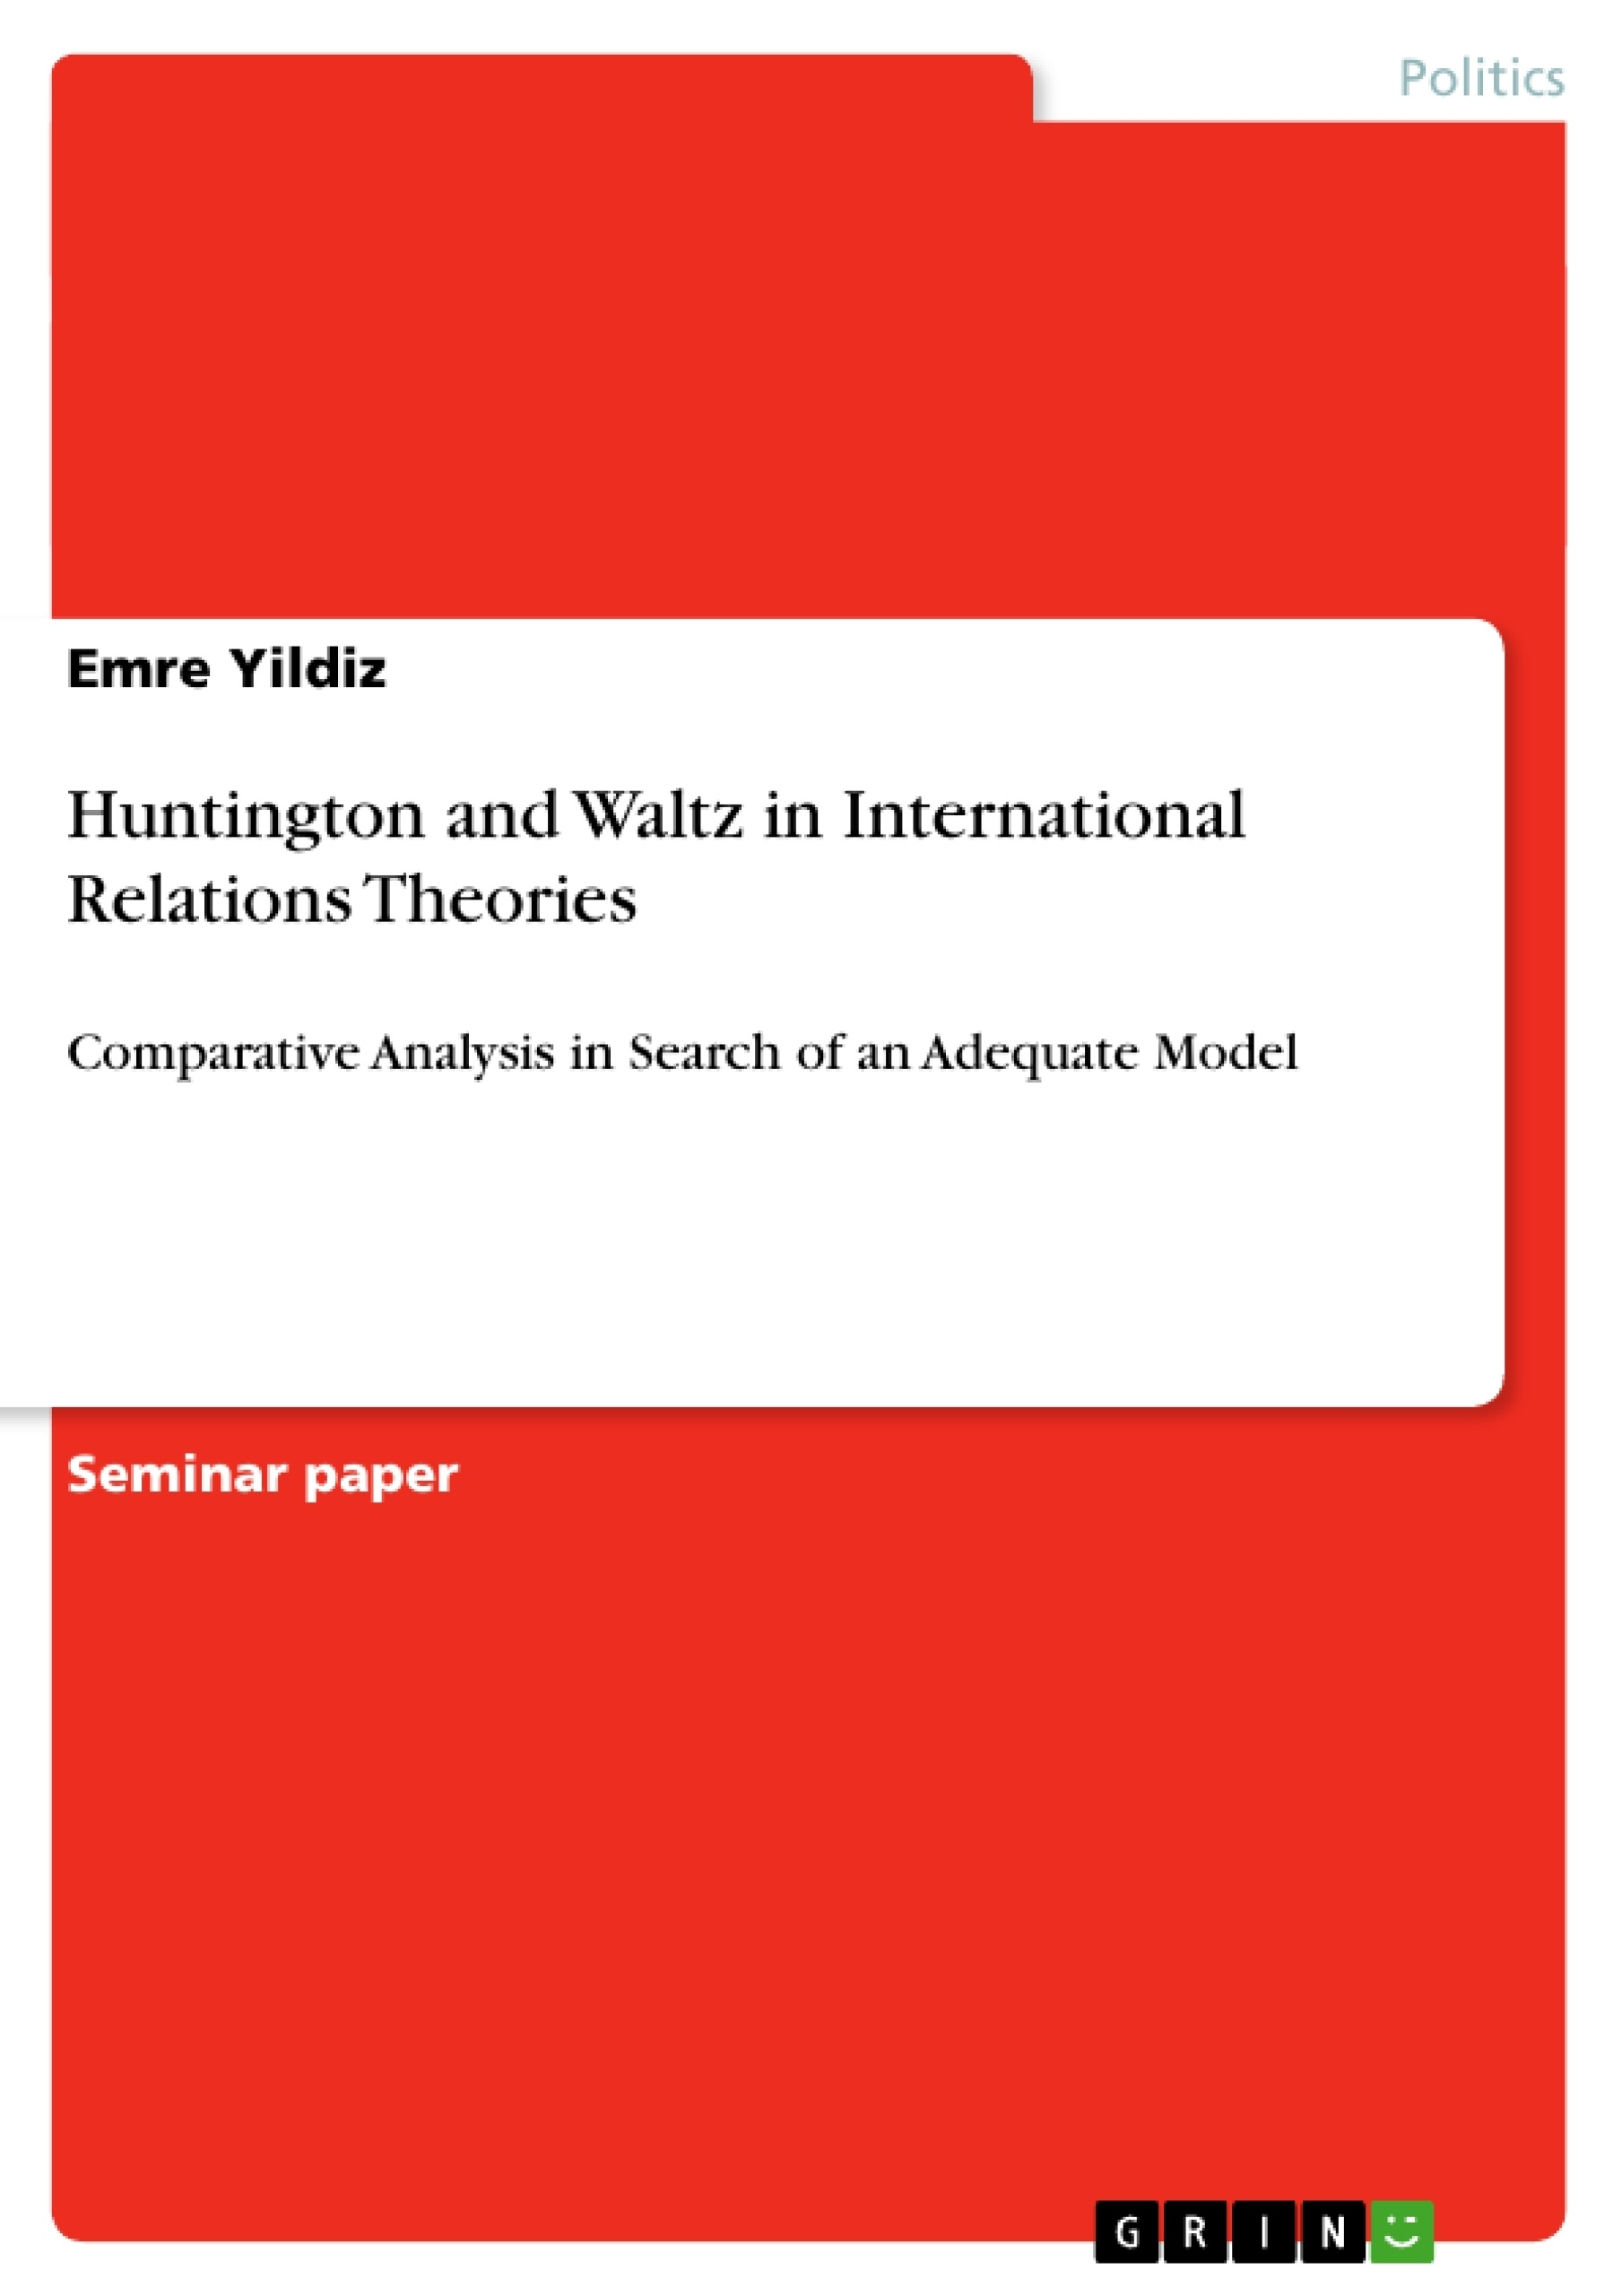 Title: Huntington and Waltz in International Relations Theories